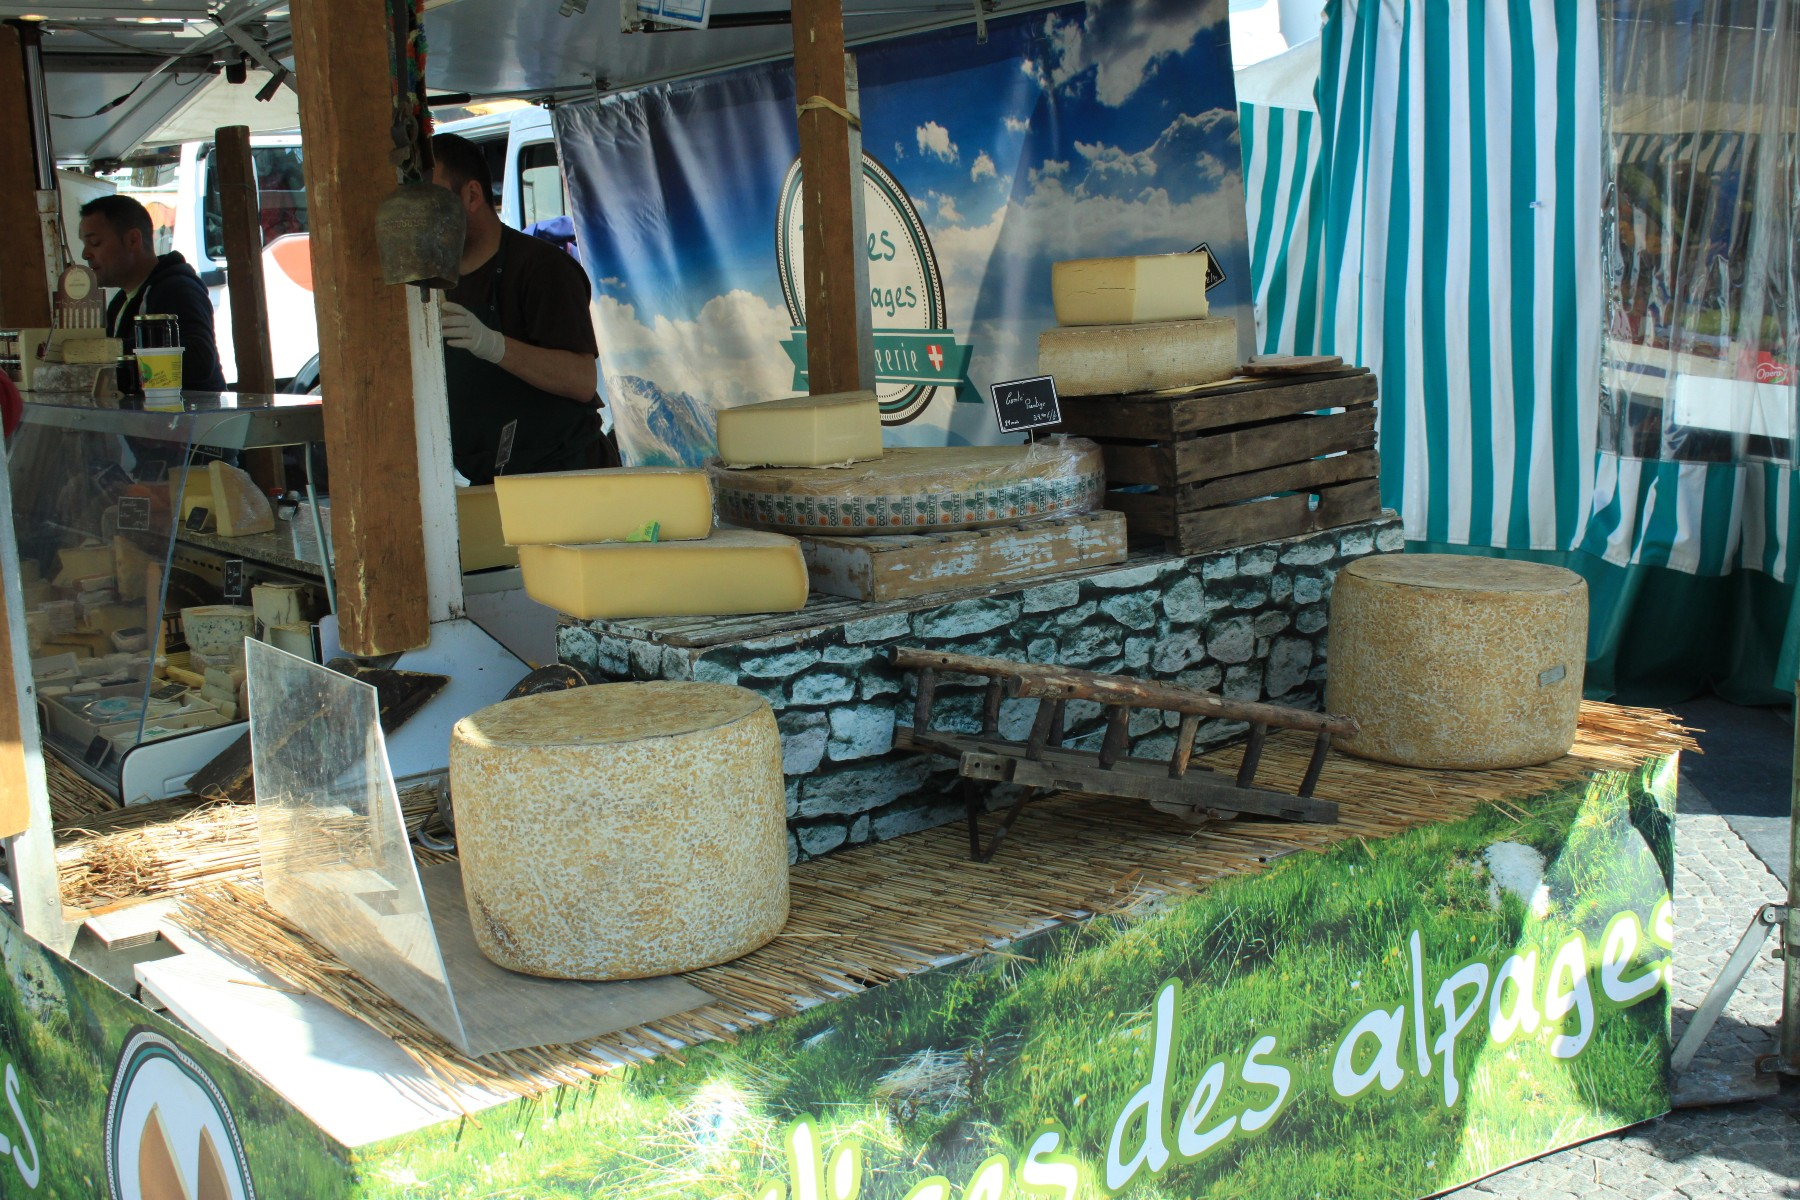 Cheese sold at a market in Luxembourg